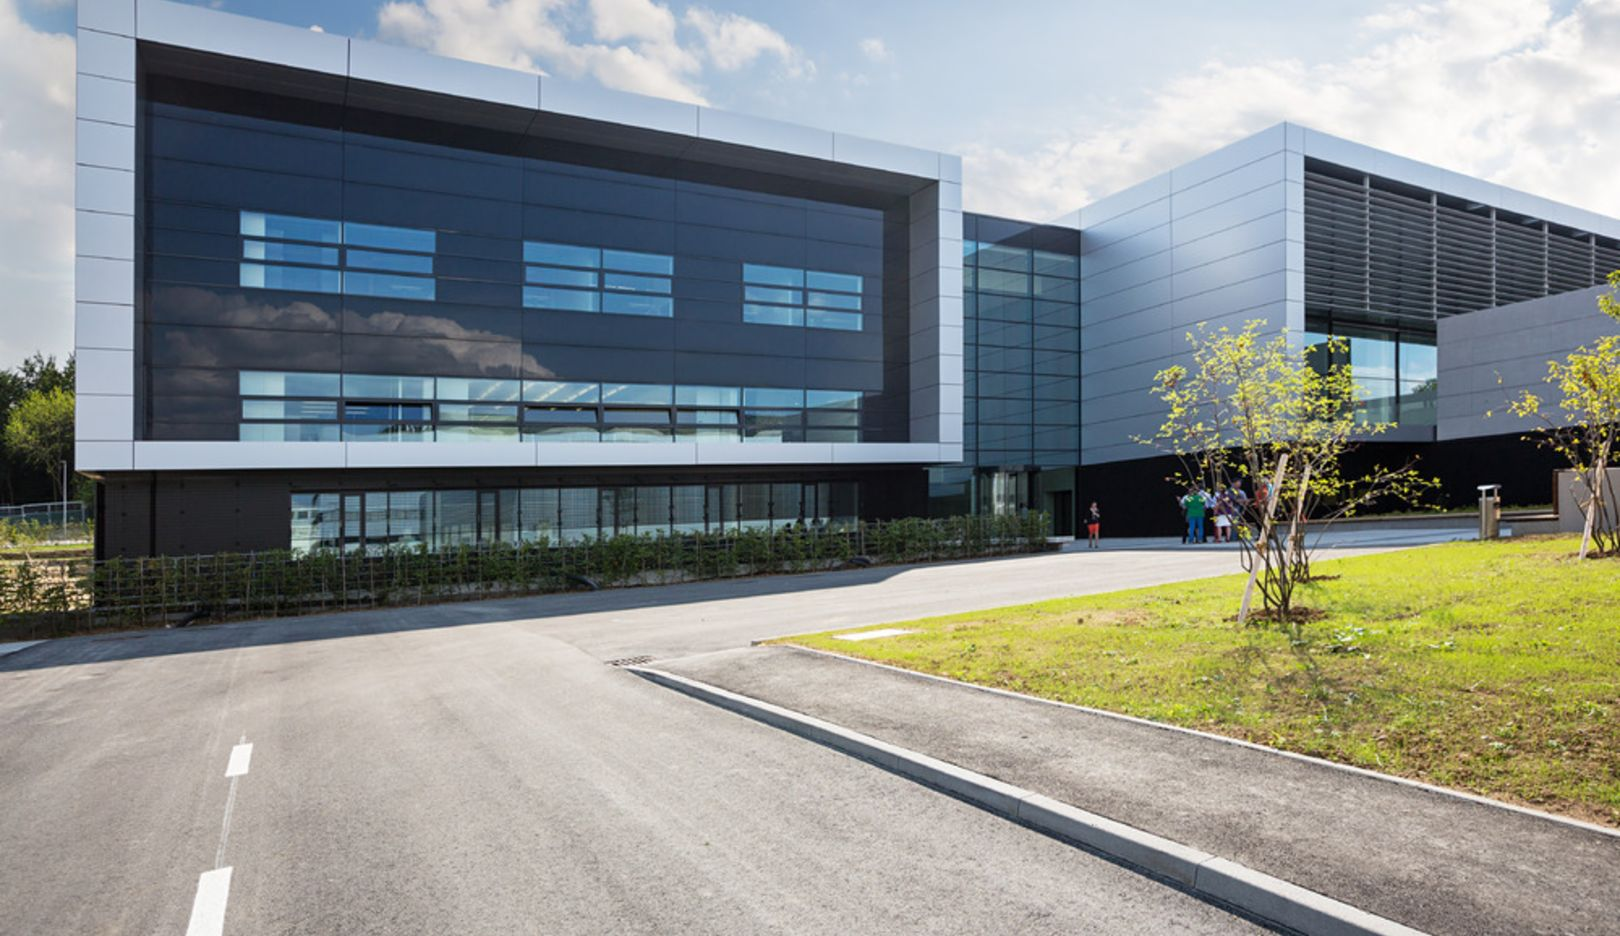 Design studio and concept building, Weissach, 2014, Porsche AG